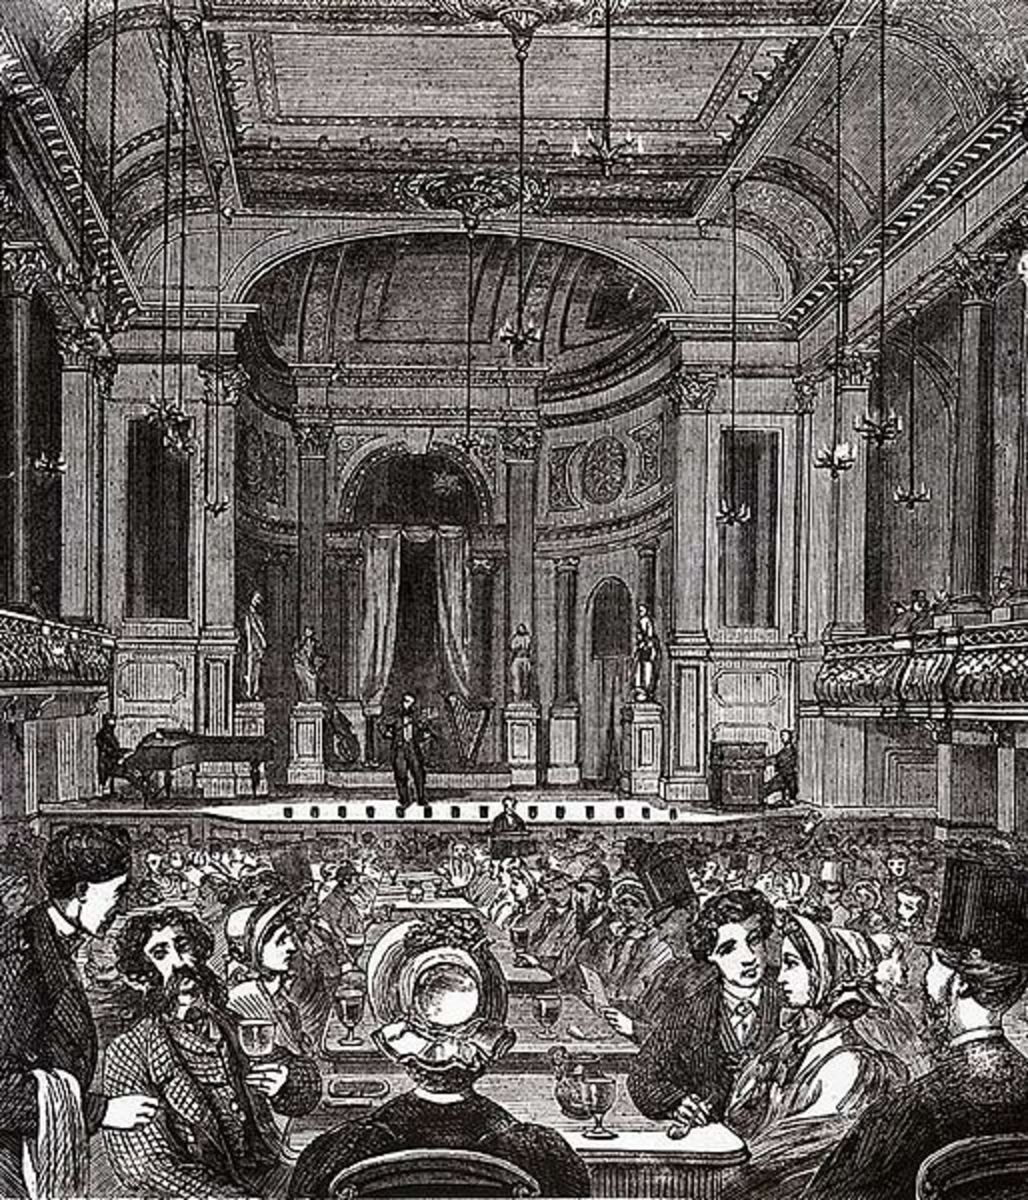 The Oxford Music Hall in 1875 where the audience could get well lubricated, the better to enjoy comic songs.